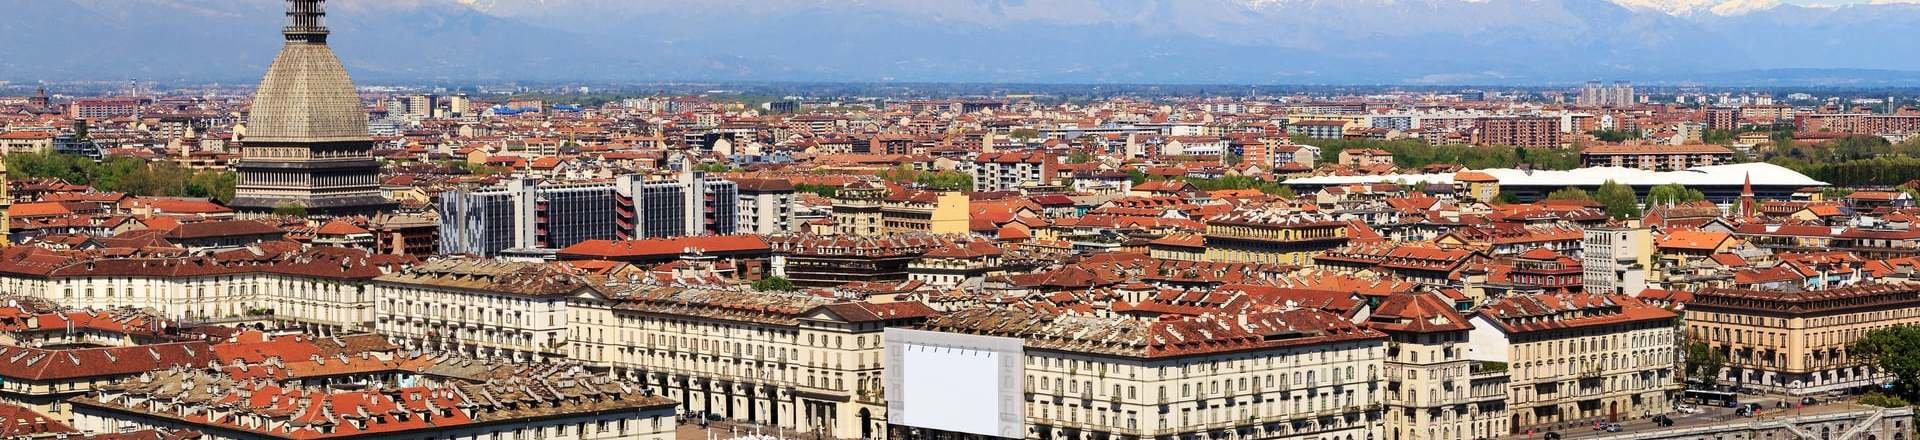 how to call turin italy from australia